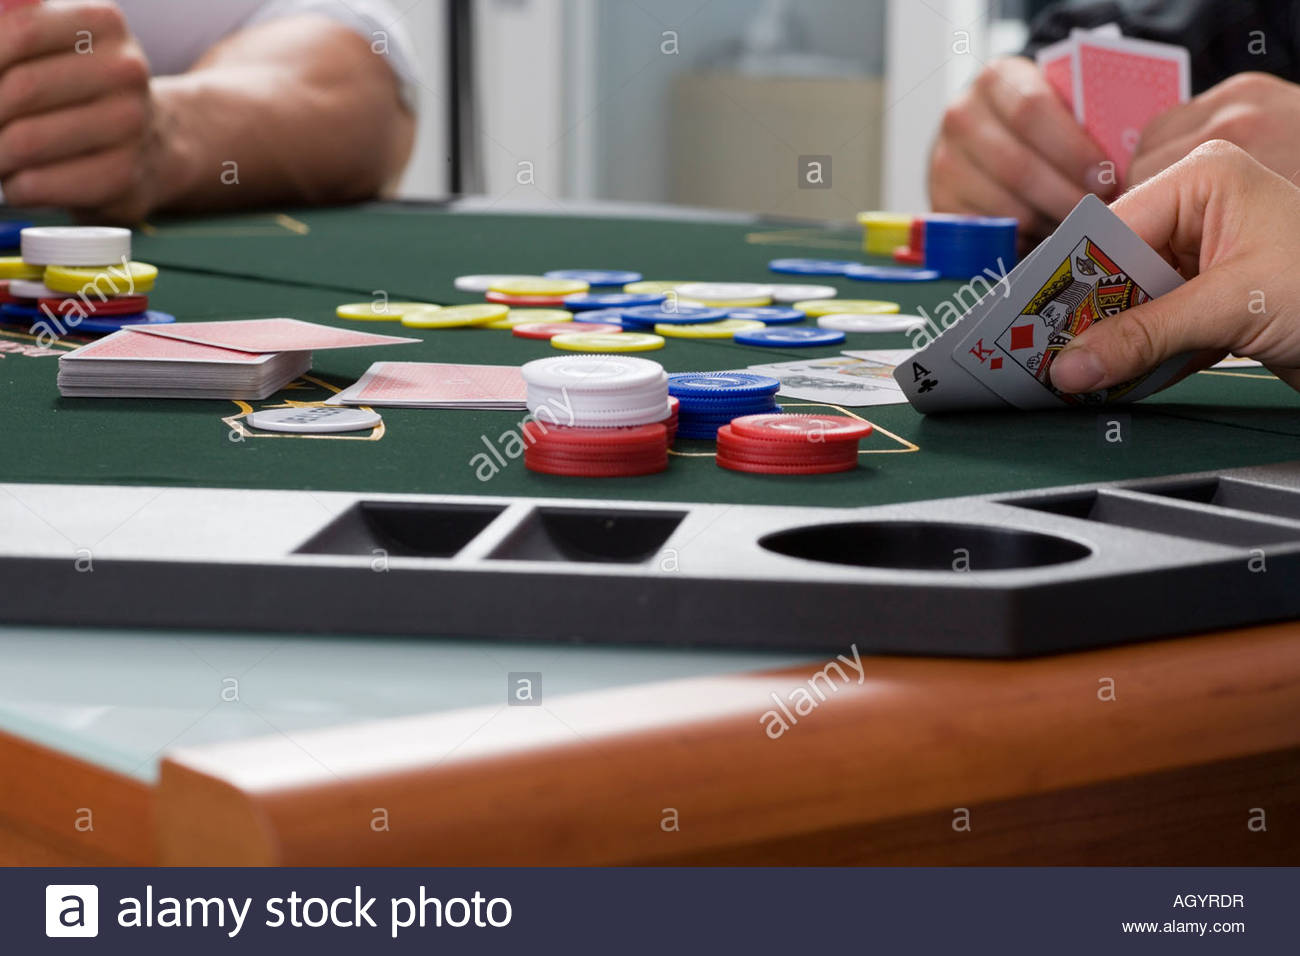 Close up of playing cards on poker table - Stock Image